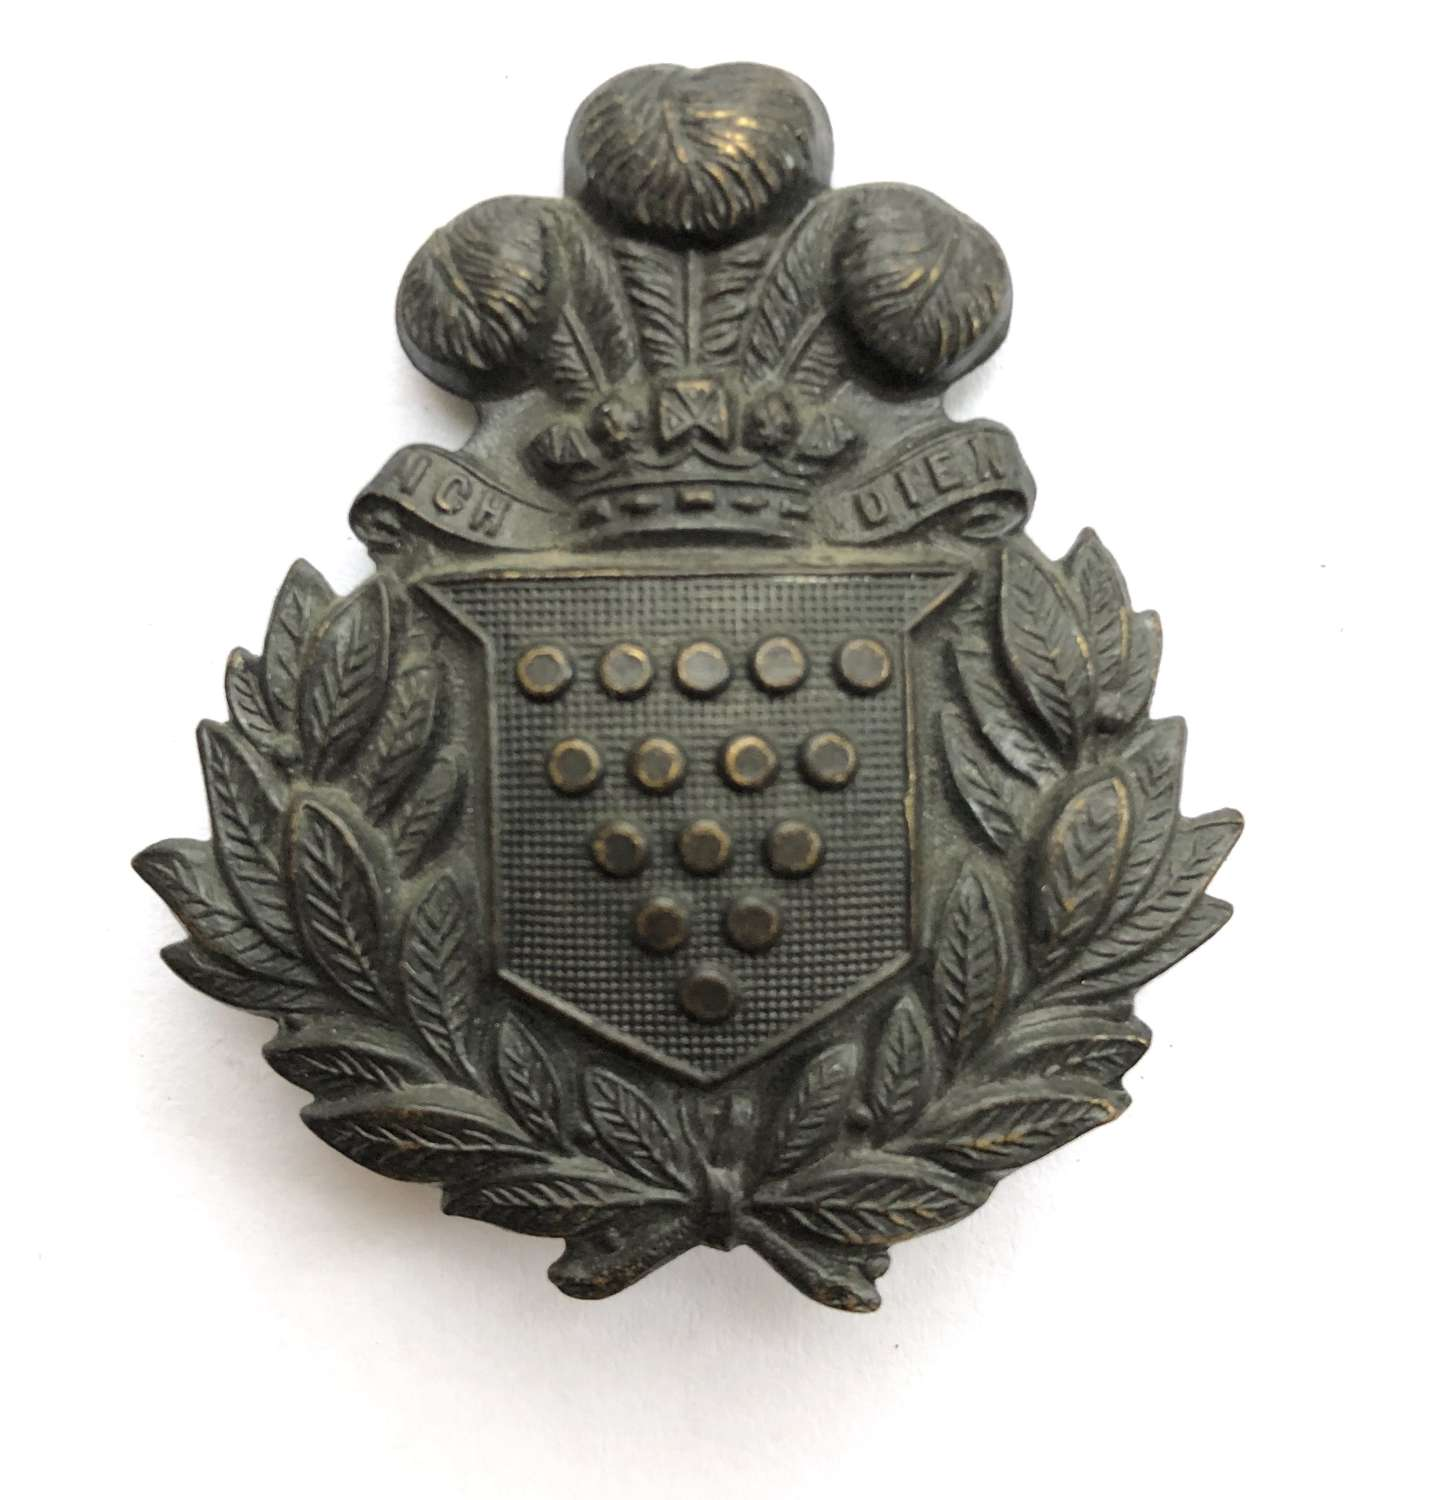 Cornwall Rifle Volunteers Victorian glengarry badge circa 1874-99